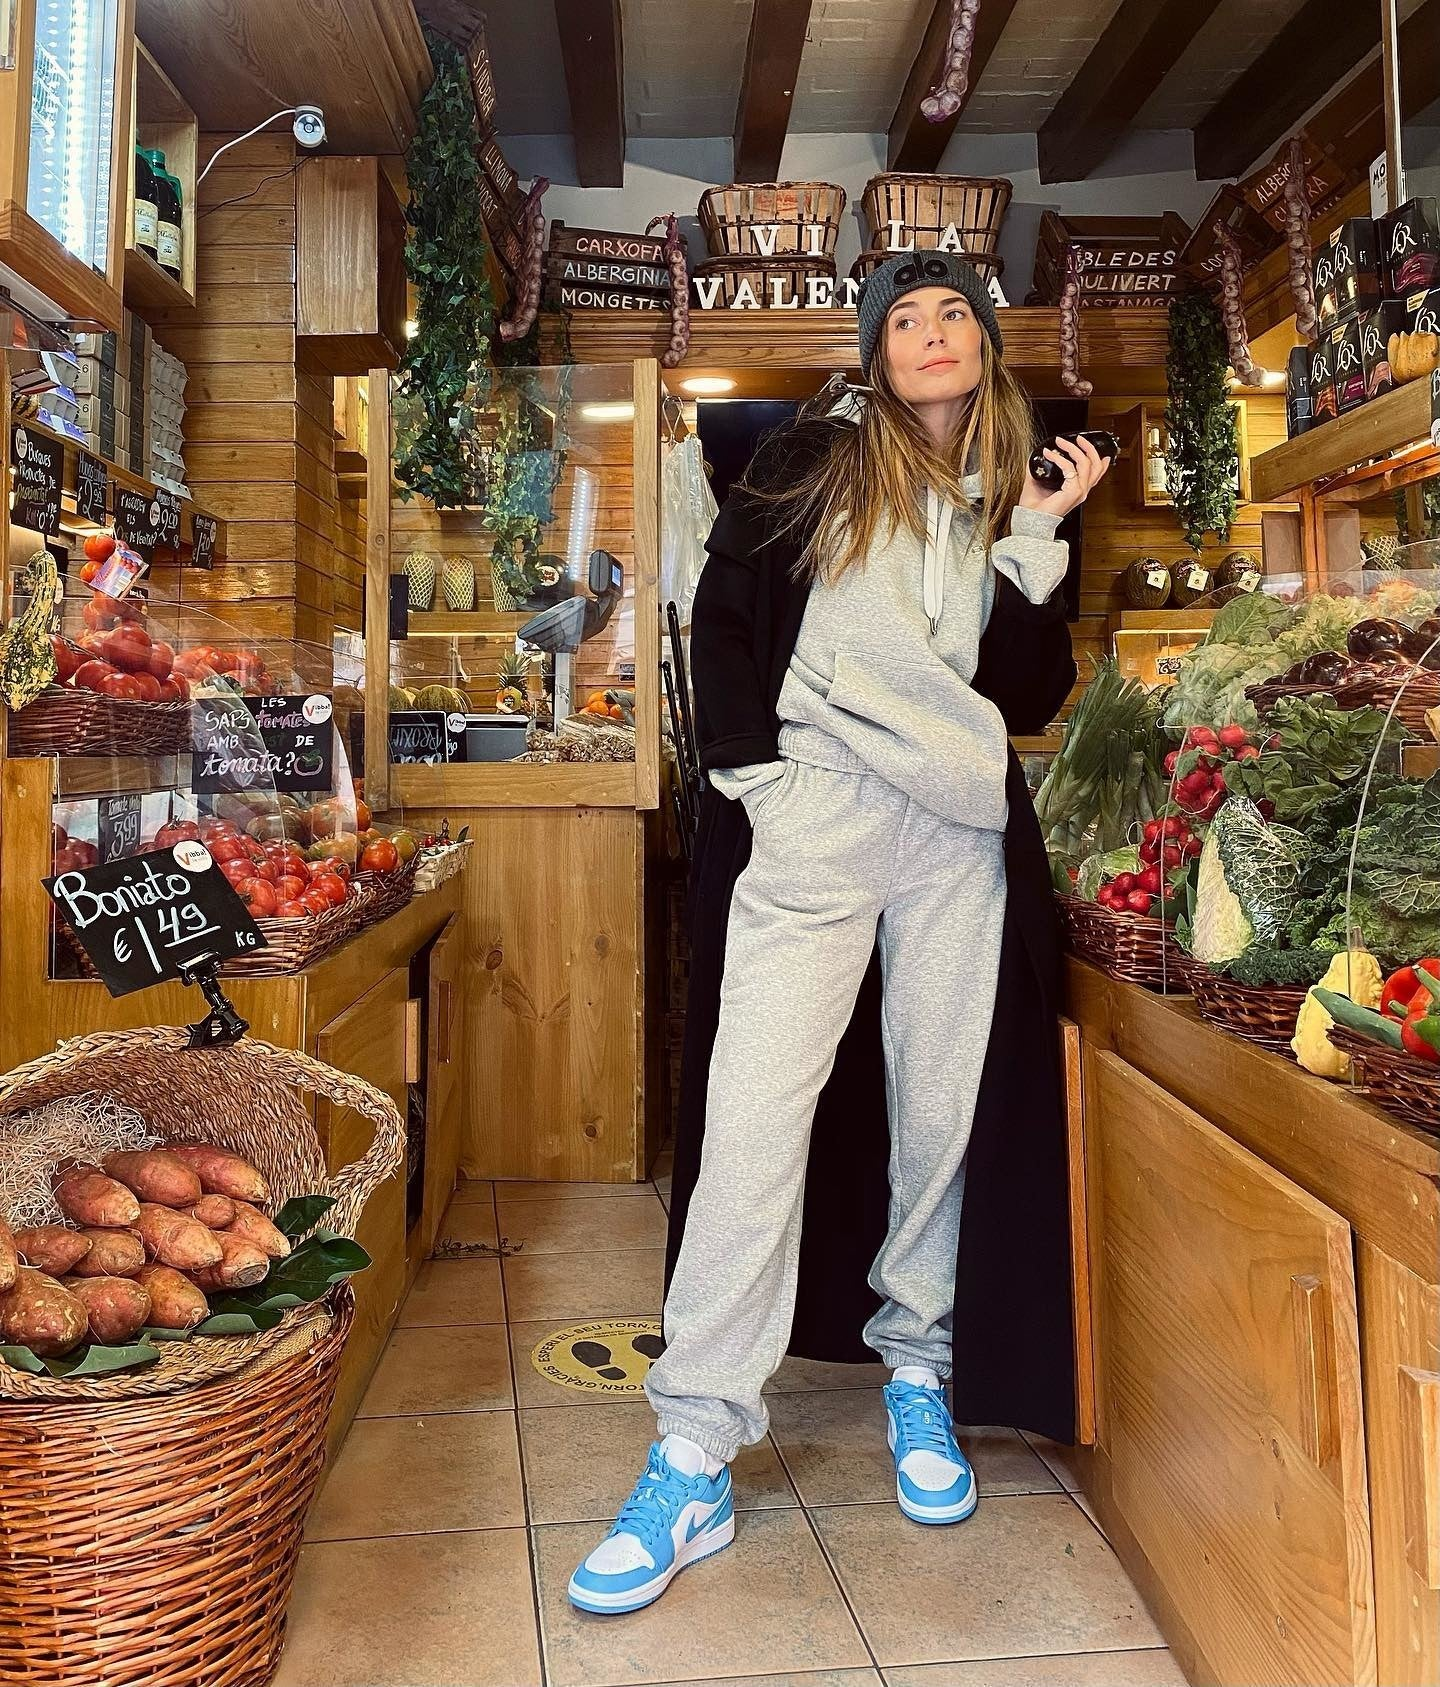 @coralsimanovich wearing the Accolade Hoodie and Accolade Sweatpants with an oversized black trench coat, Alo beanie, and turquoise blue sneakers for a street look while visiting the farmers' market.